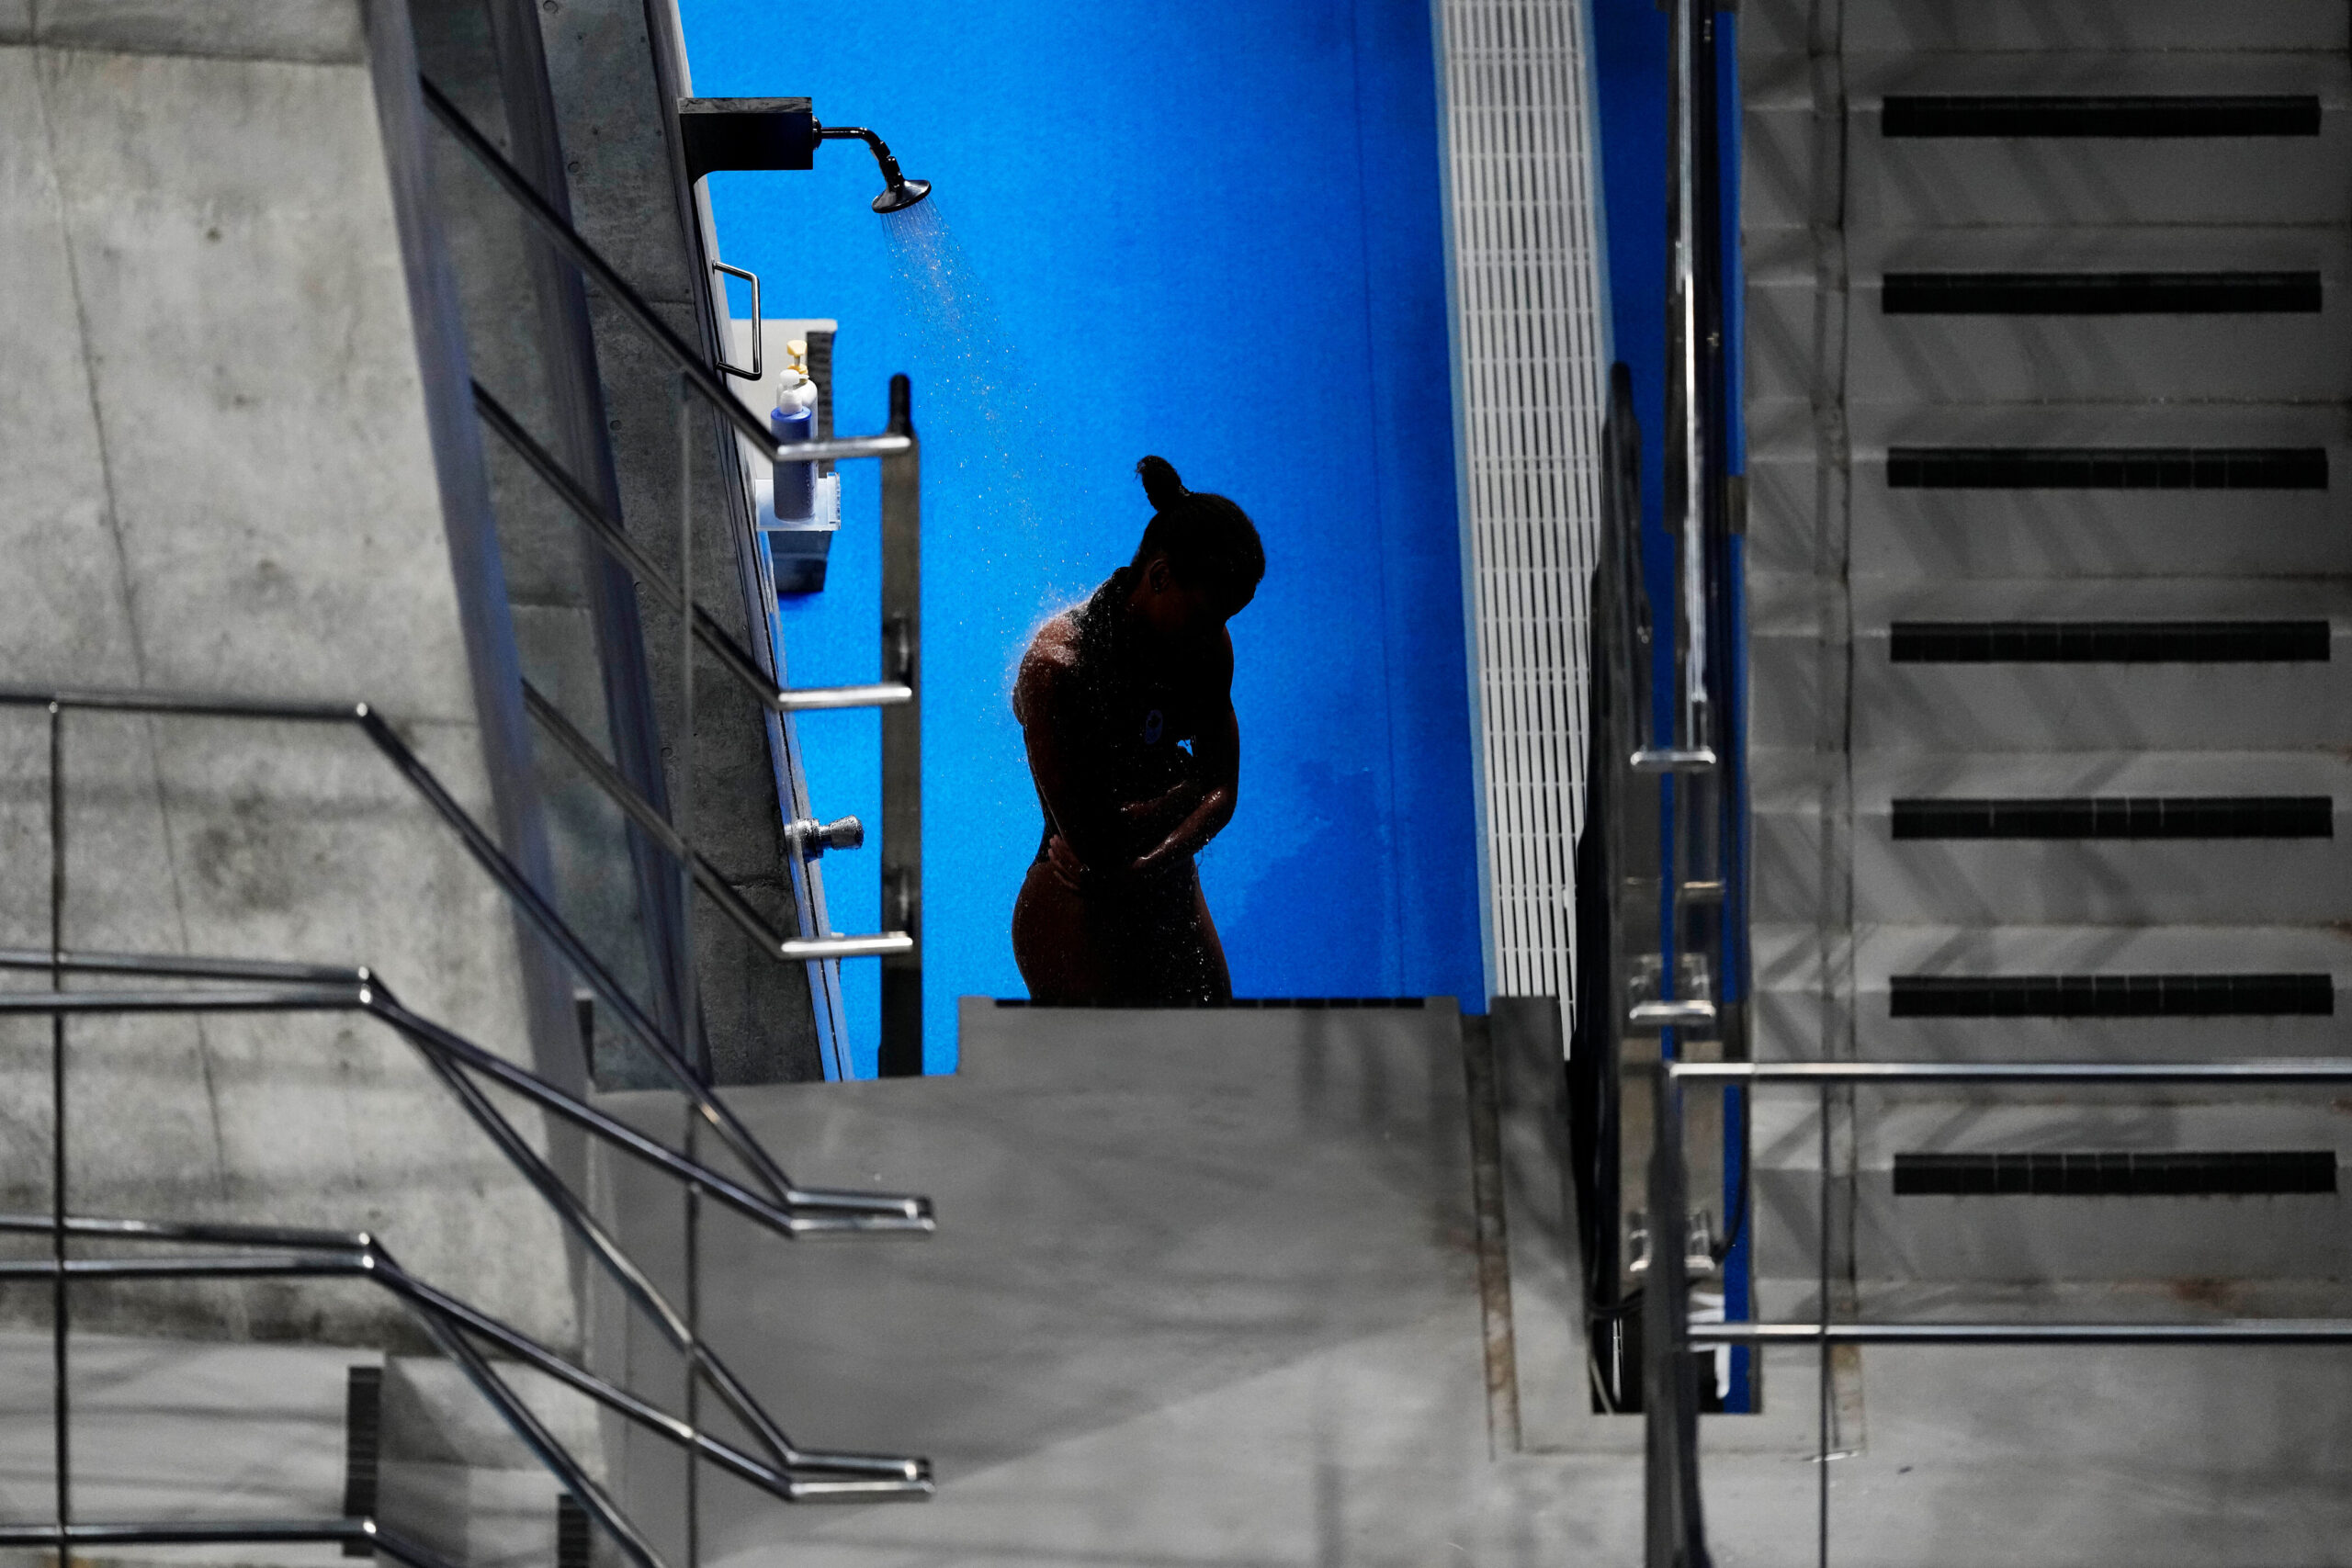 <i>David Goldman/AP</i><br/>Jennifer Abel of Canada rinses off in between rounds of the women's diving 3-meter springboard preliminary event at the Tokyo Olympics on July 30